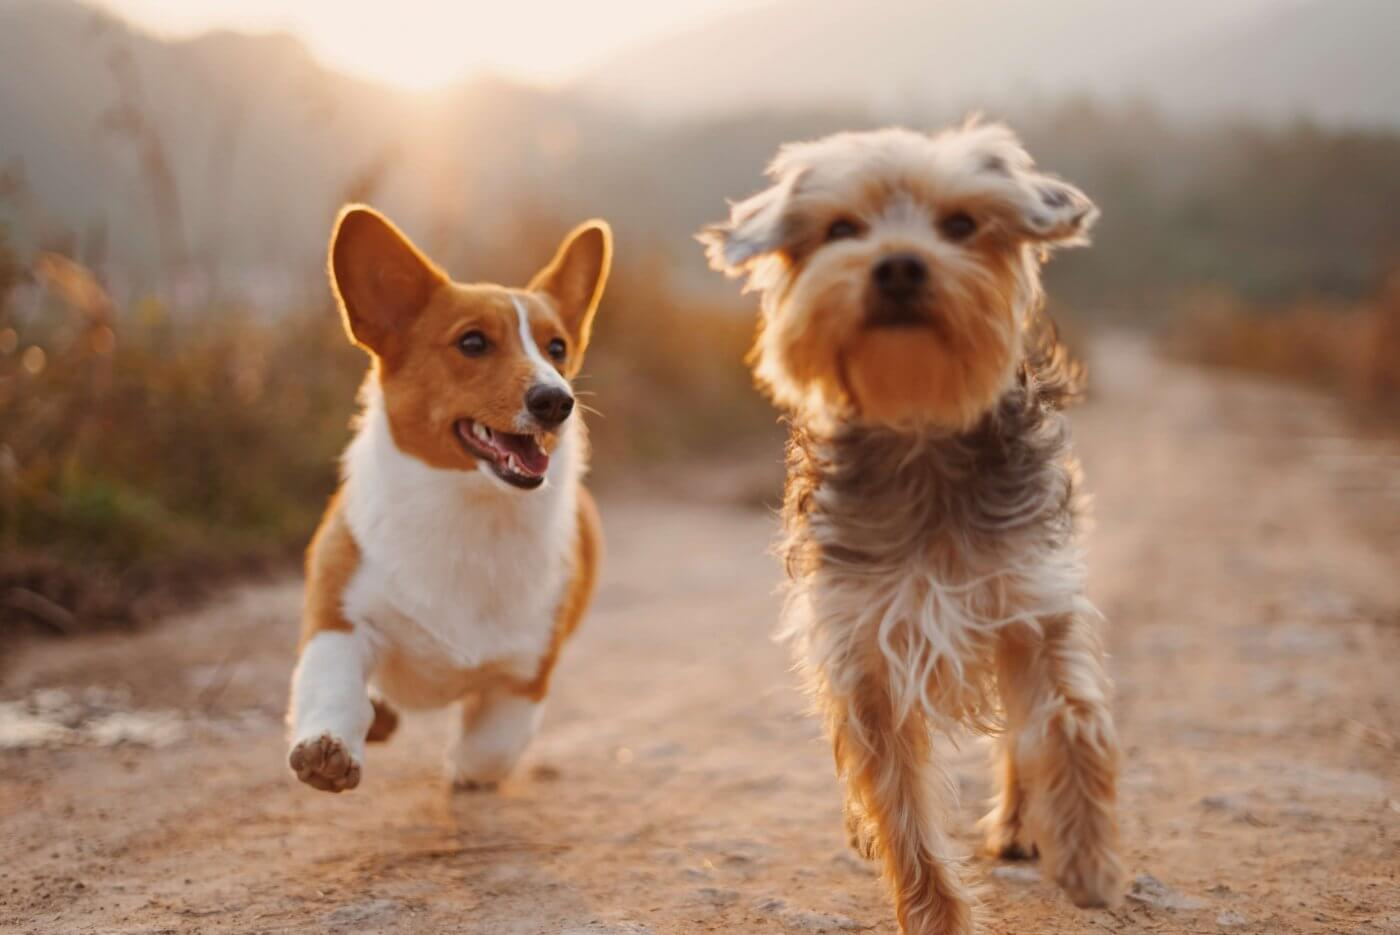 Dogs Running   The Mustcard